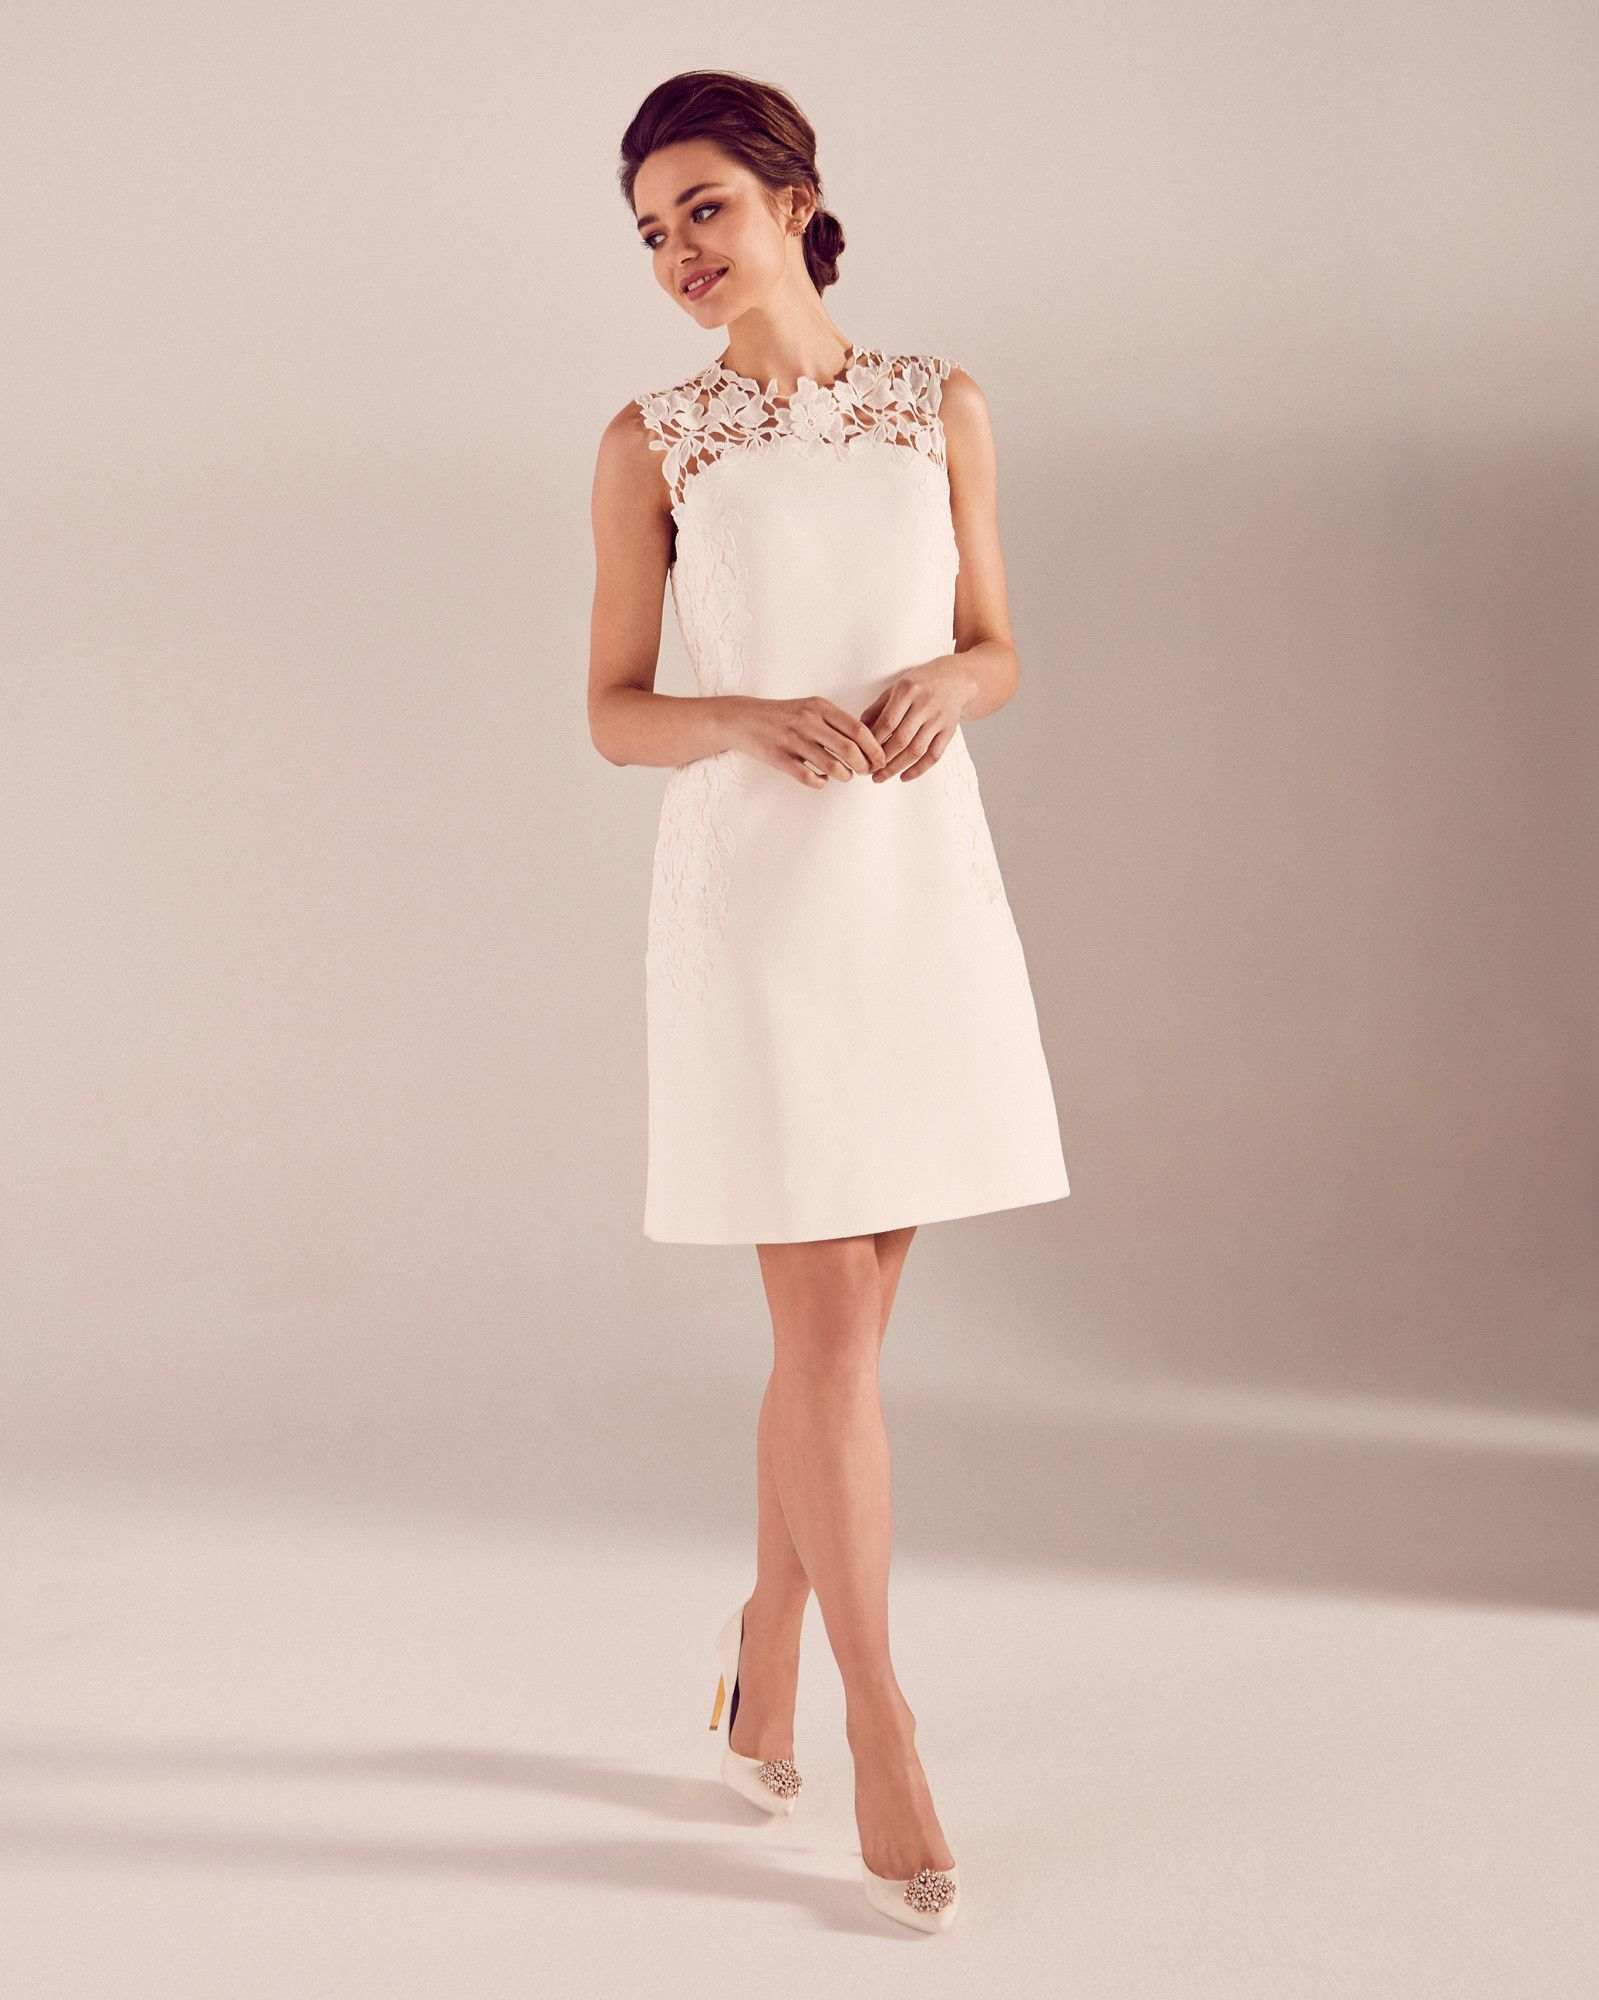 Embroidered Lace Shift Dress White Dresses Ted Baker Weisses Spitzenkleid Etuikleid Weisses Kleid